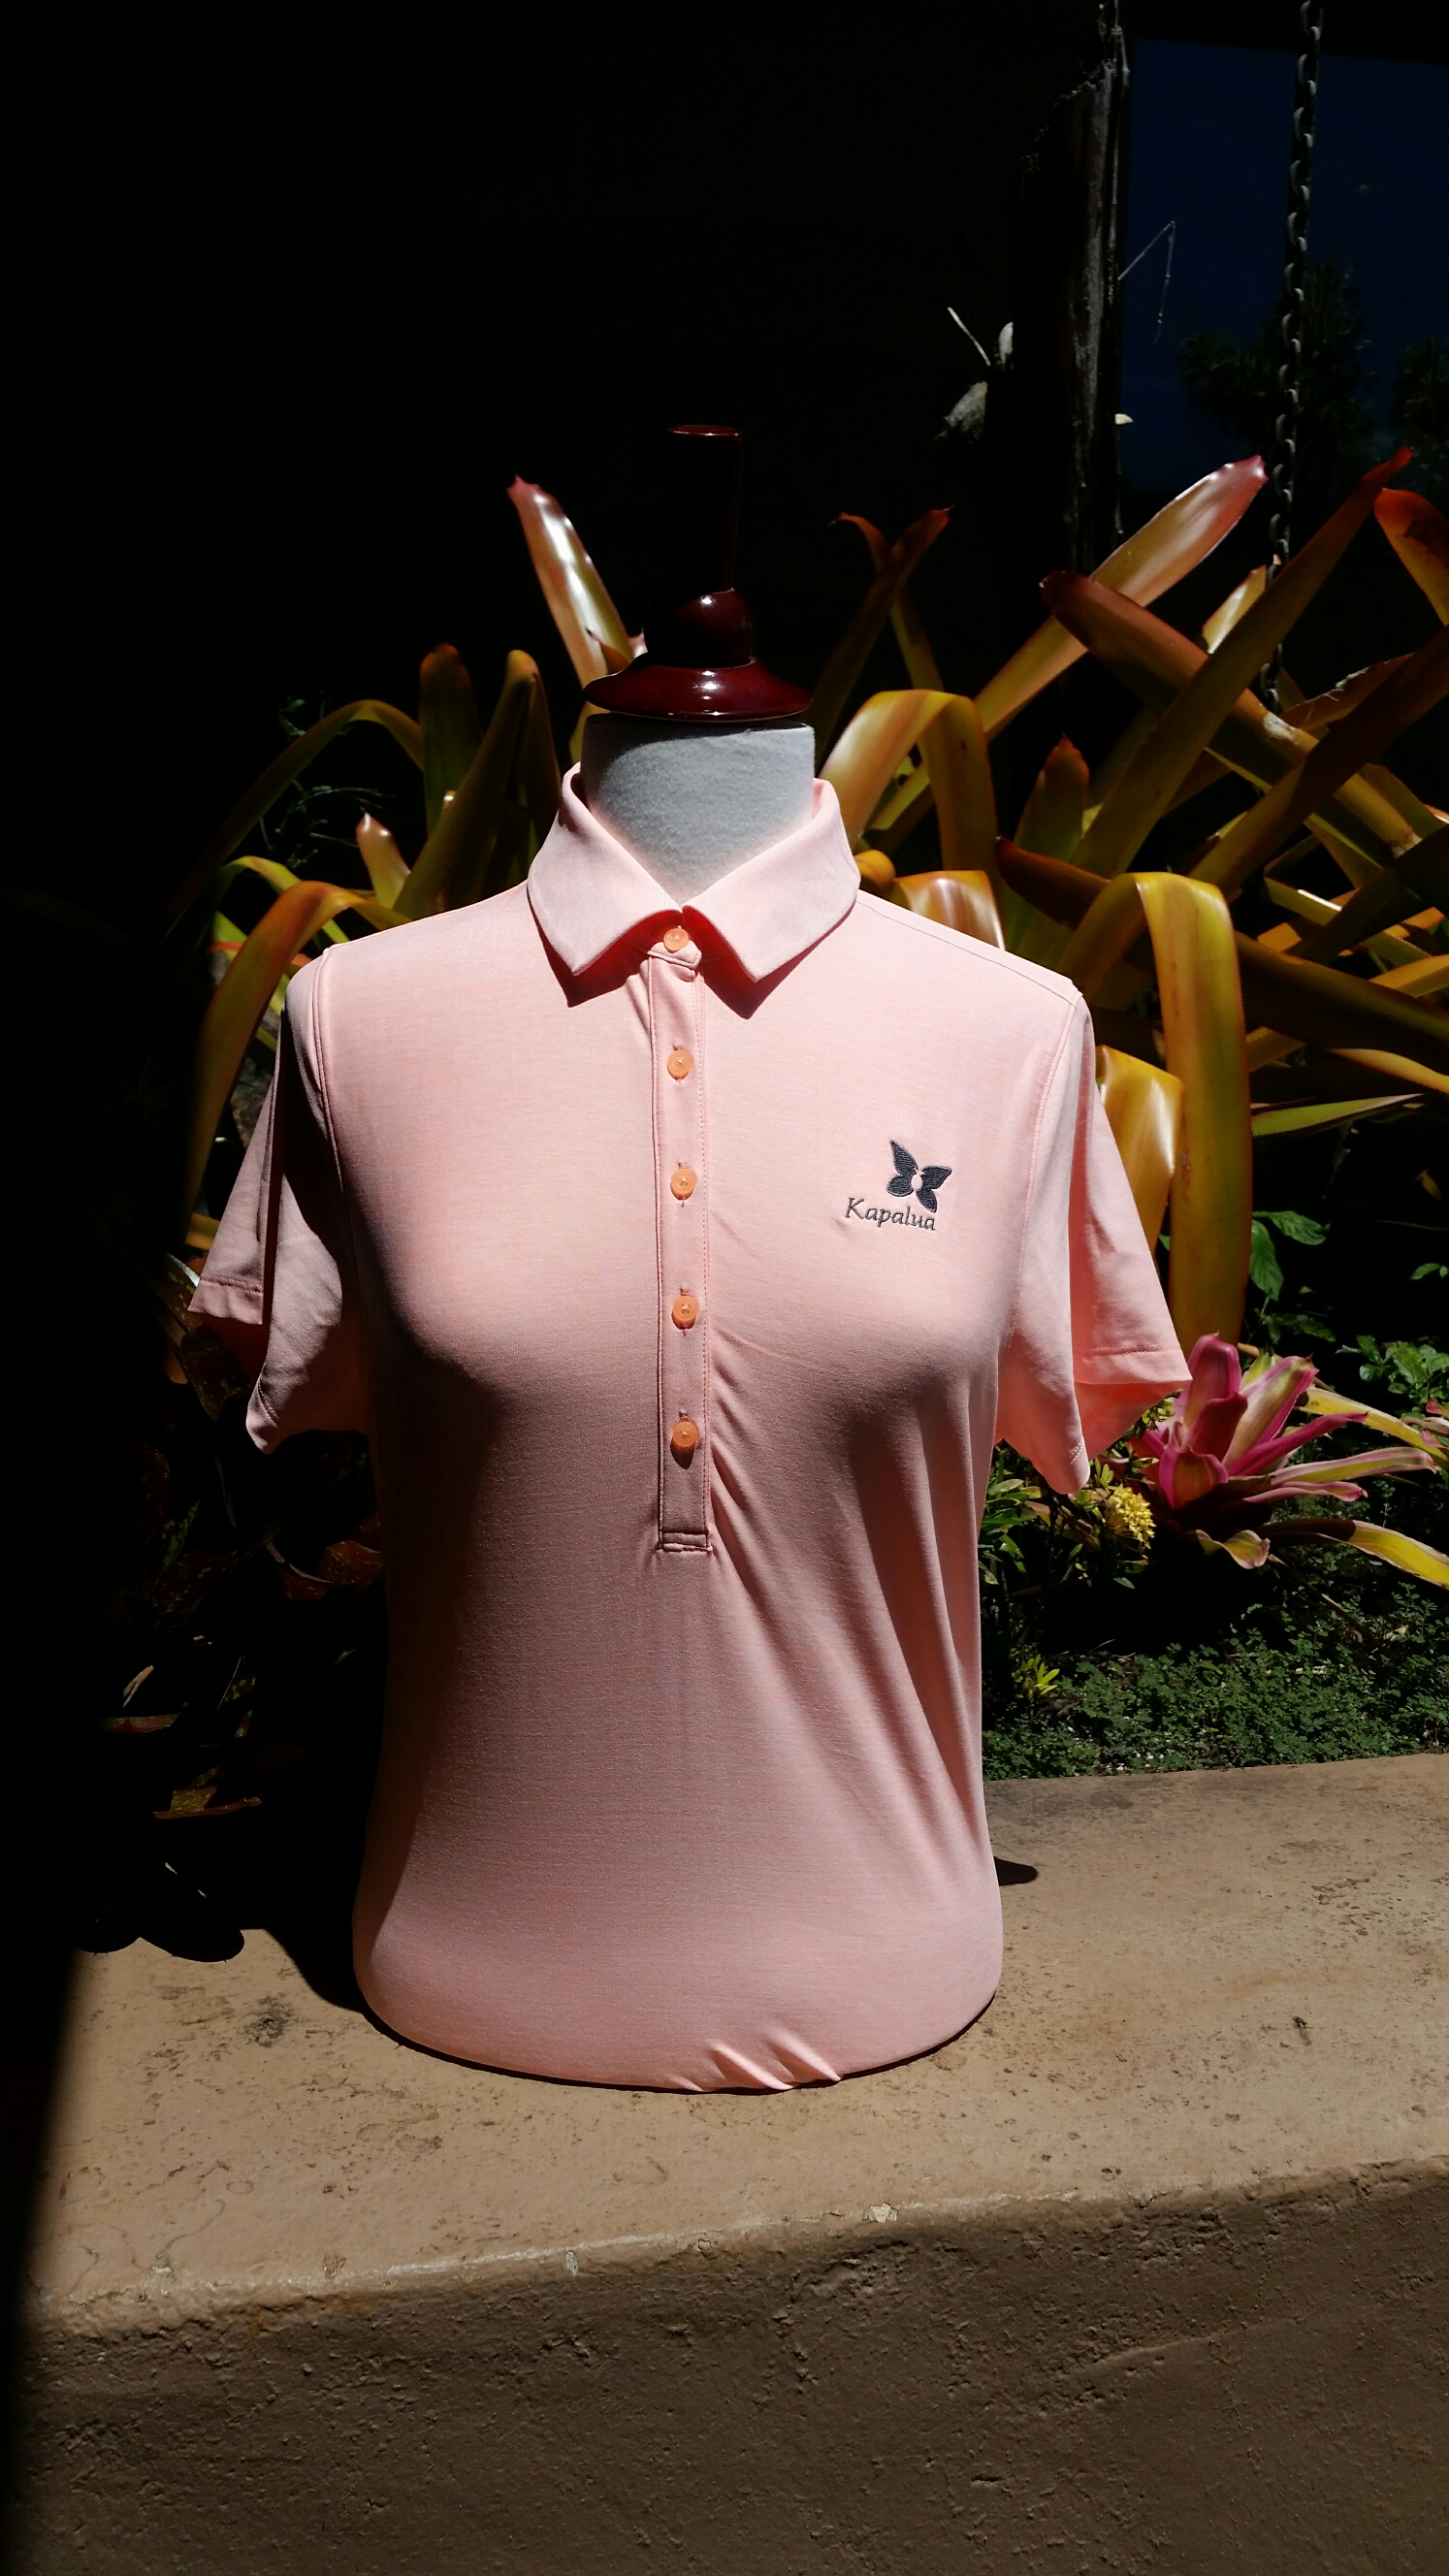 Womens Under Armour Polo Shirt - Peach